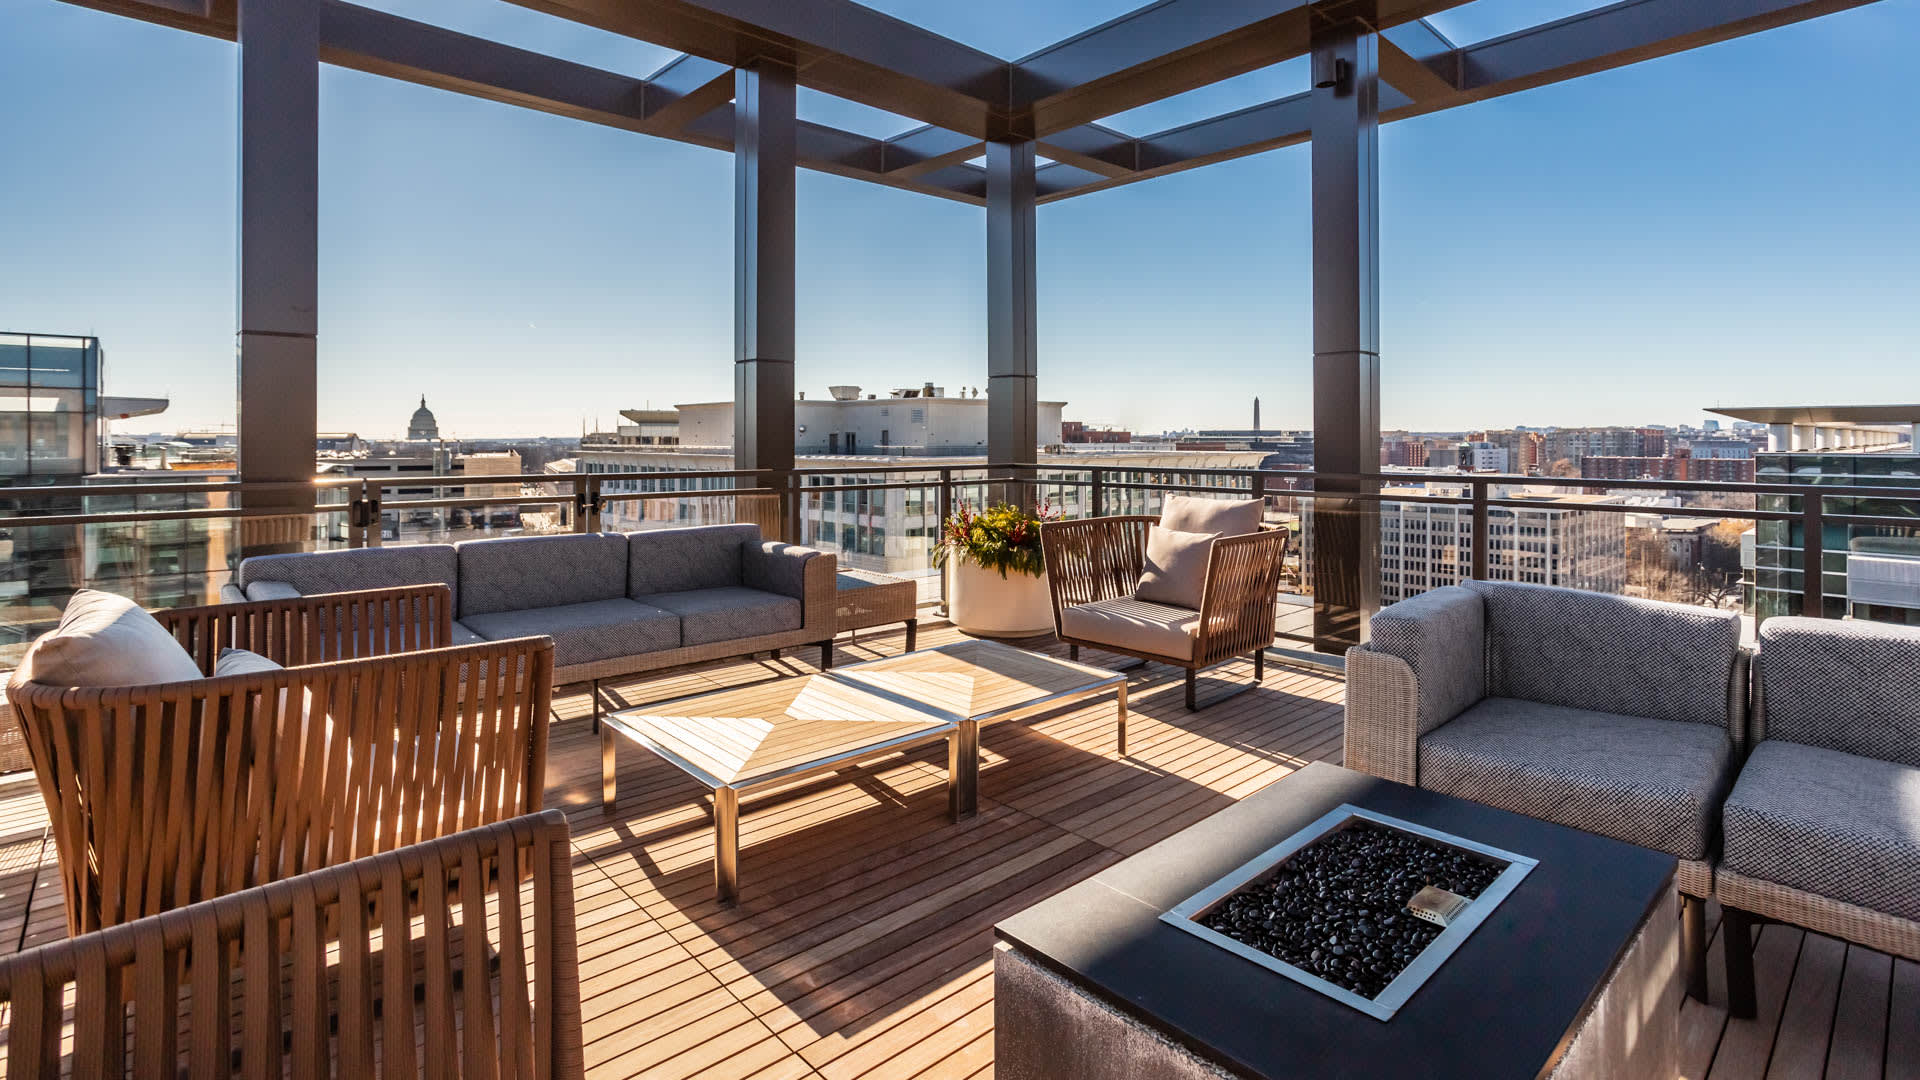 100K Apartments - Rooftop Fire Pit